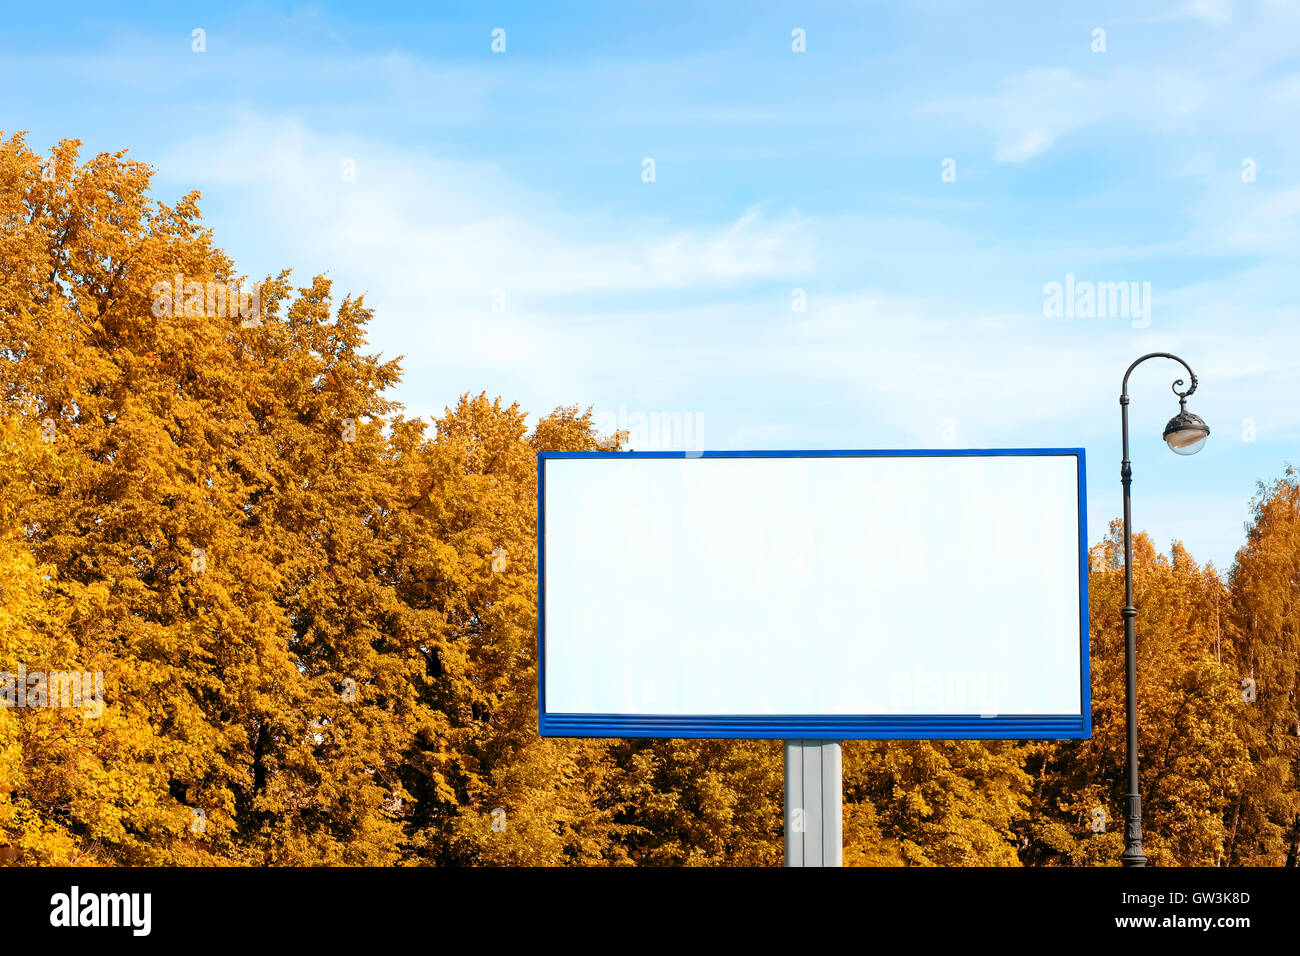 Empty billboard with copy space against bright autumn foliage and blue sky - Stock Image